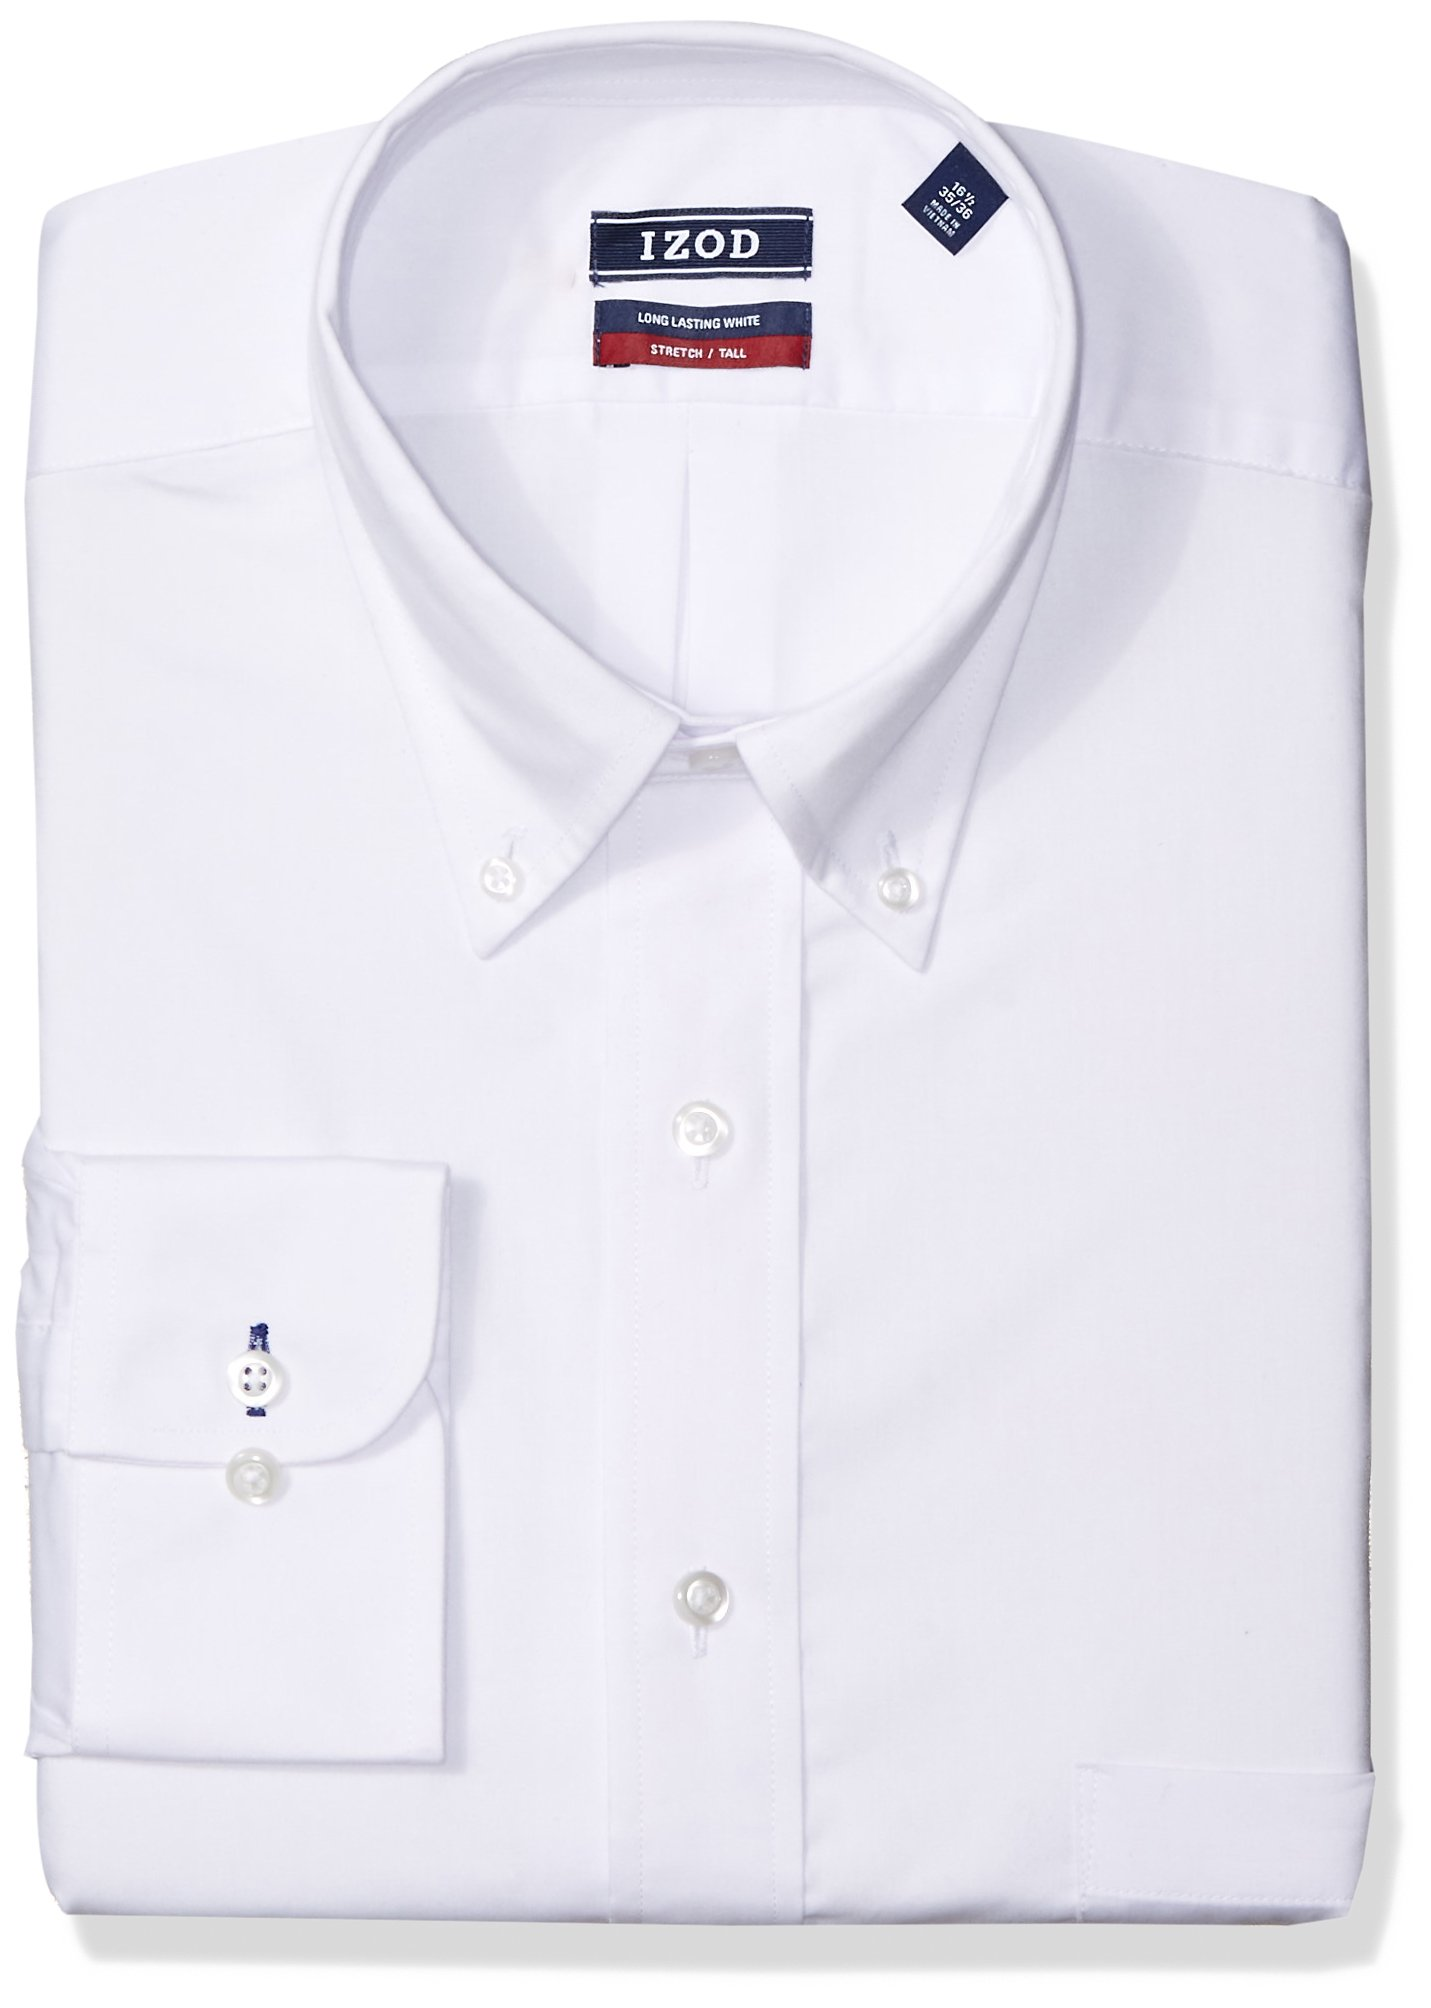 IZOD Men's Big and Tall Dress Shirts Stretch Fit Solid, White, 20'' Neck 35-36'' Sleeve